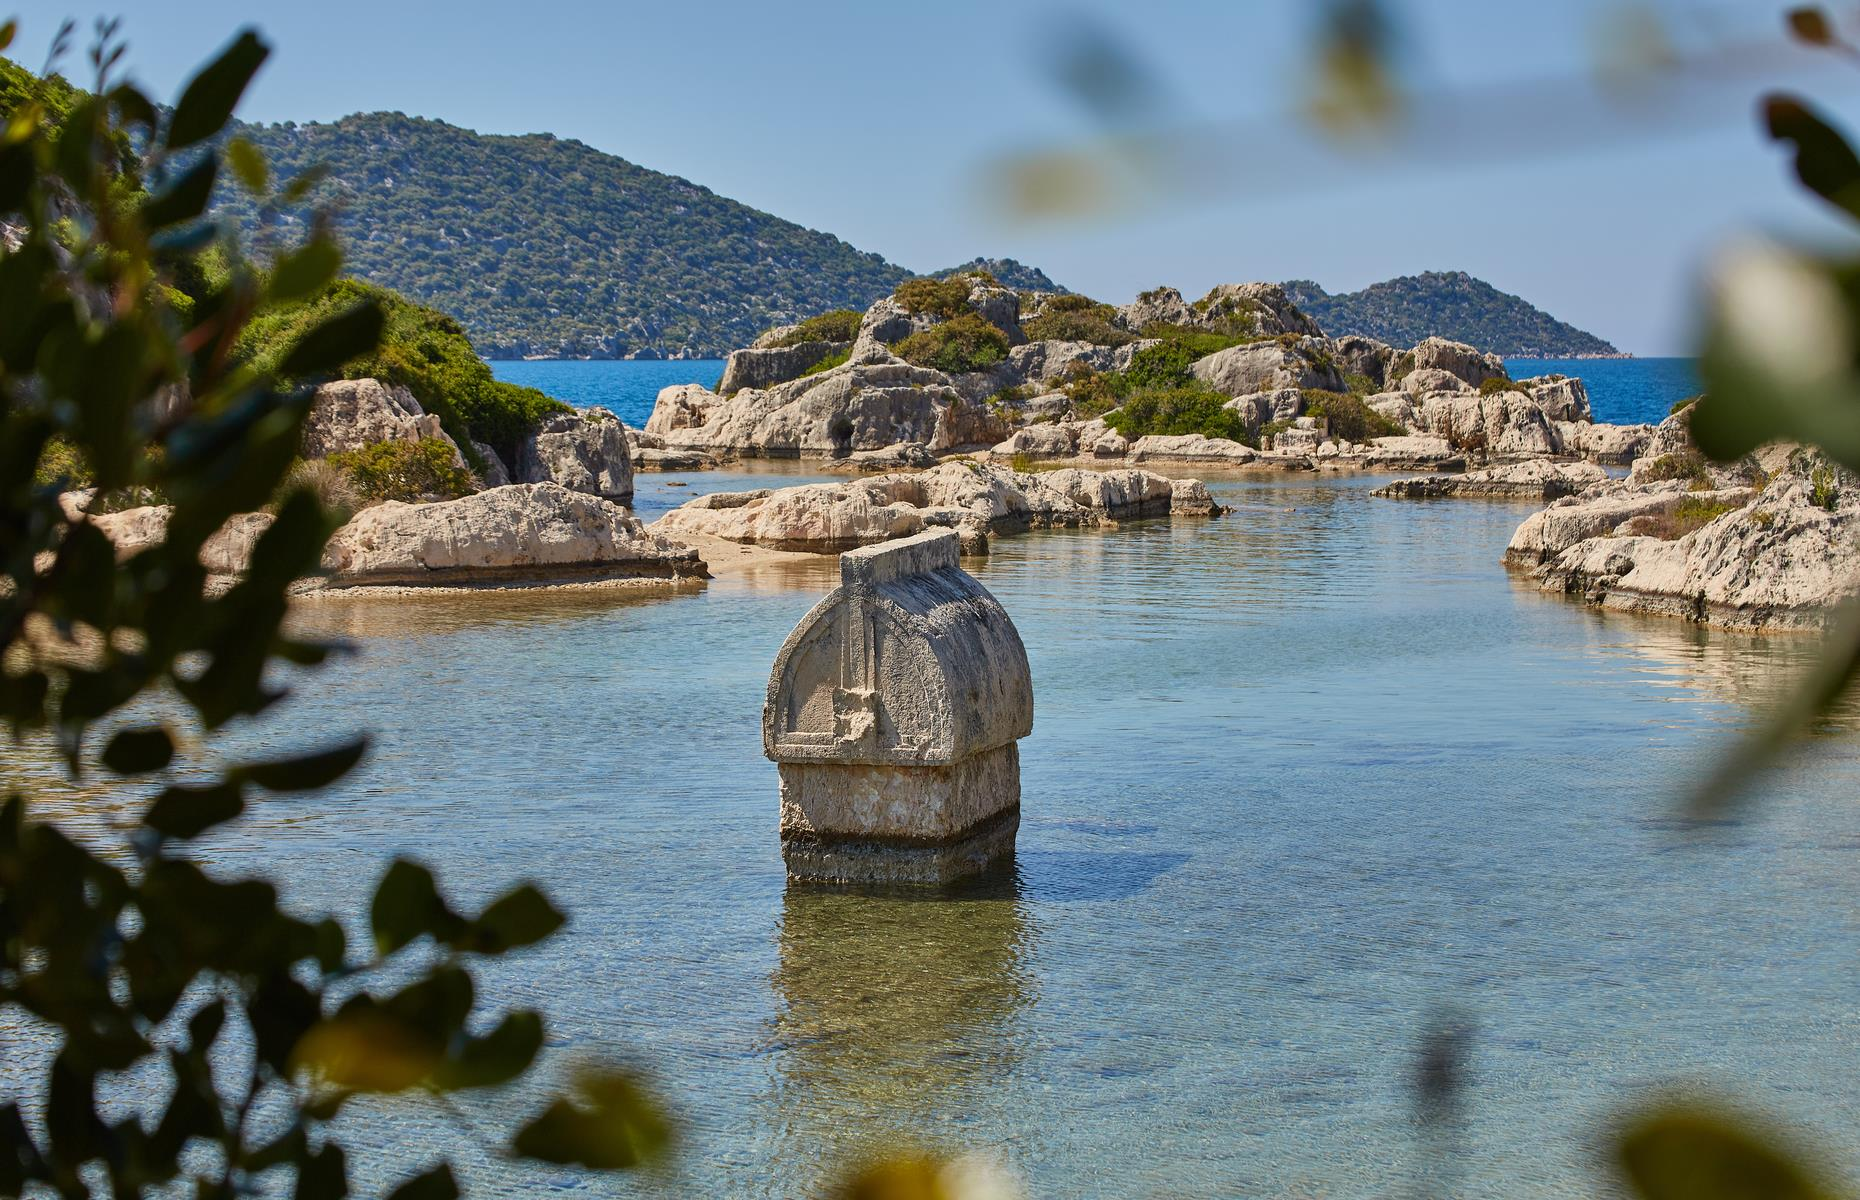 Slide 25 of 25: The island of Kekova remains uninhabited, aside from a scattering of grazing goats, and is designated a Specially Protected Area as well as being on UNESCO's tentative list as a World Heritage Site. Diving and snorkeling are banned to protect the ruins, though some tour boats are allowed to pass by slowly. Many of Simena's incredible structures, including ornate tombs that rise above the water level, can be seen from dry land.